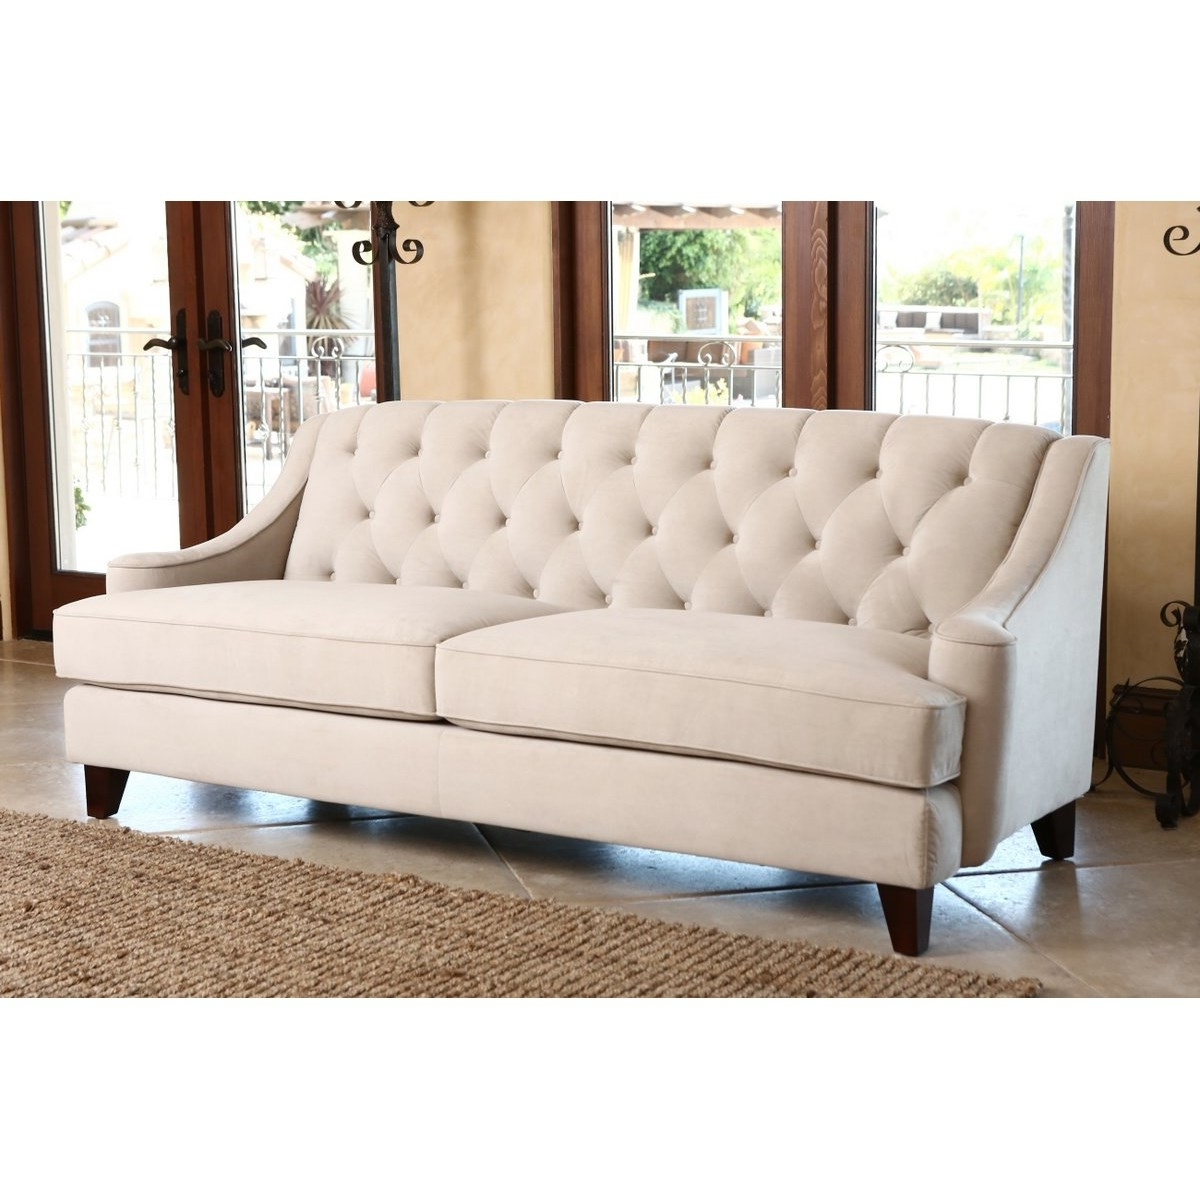 Furniture : Kijiji Sofa On Sale Oxford Tufted Sectional Sofa In Favorite Quad Cities Sectional Sofas (View 8 of 15)